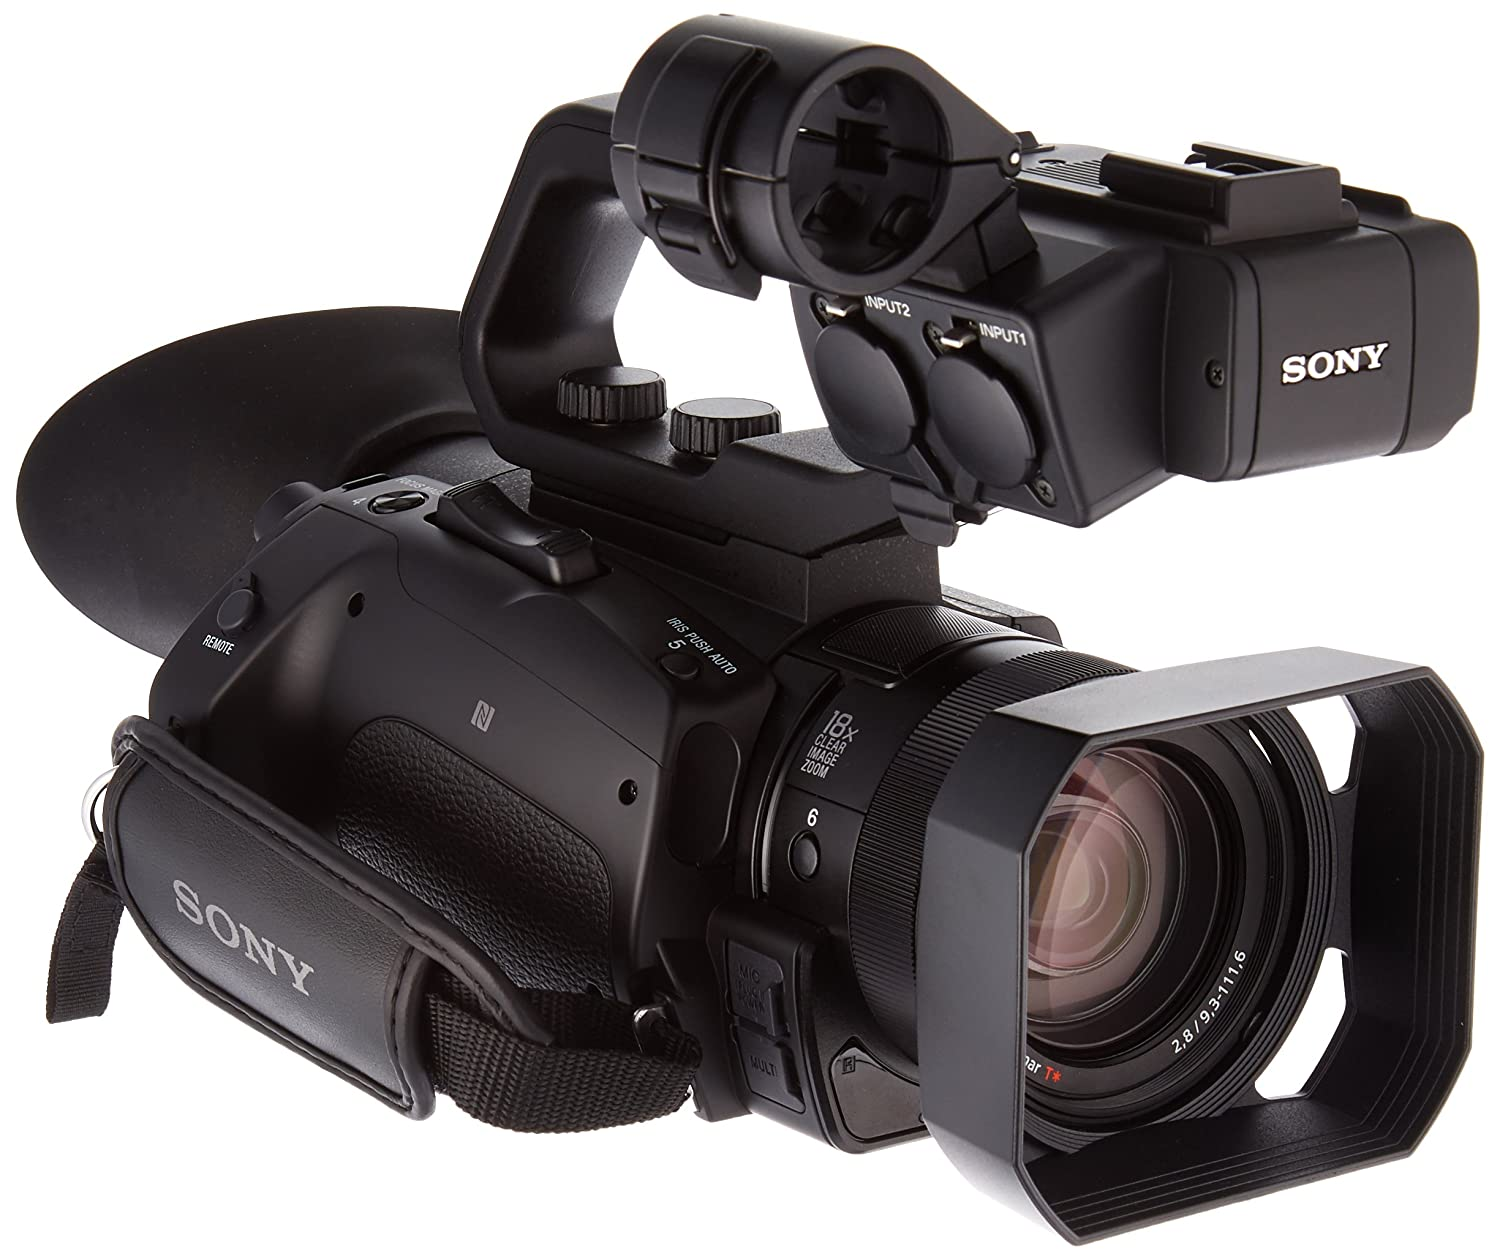 Sony PXW-Z90V 4K HD Compact NXCAM Camcorder 81DB97pwtpL